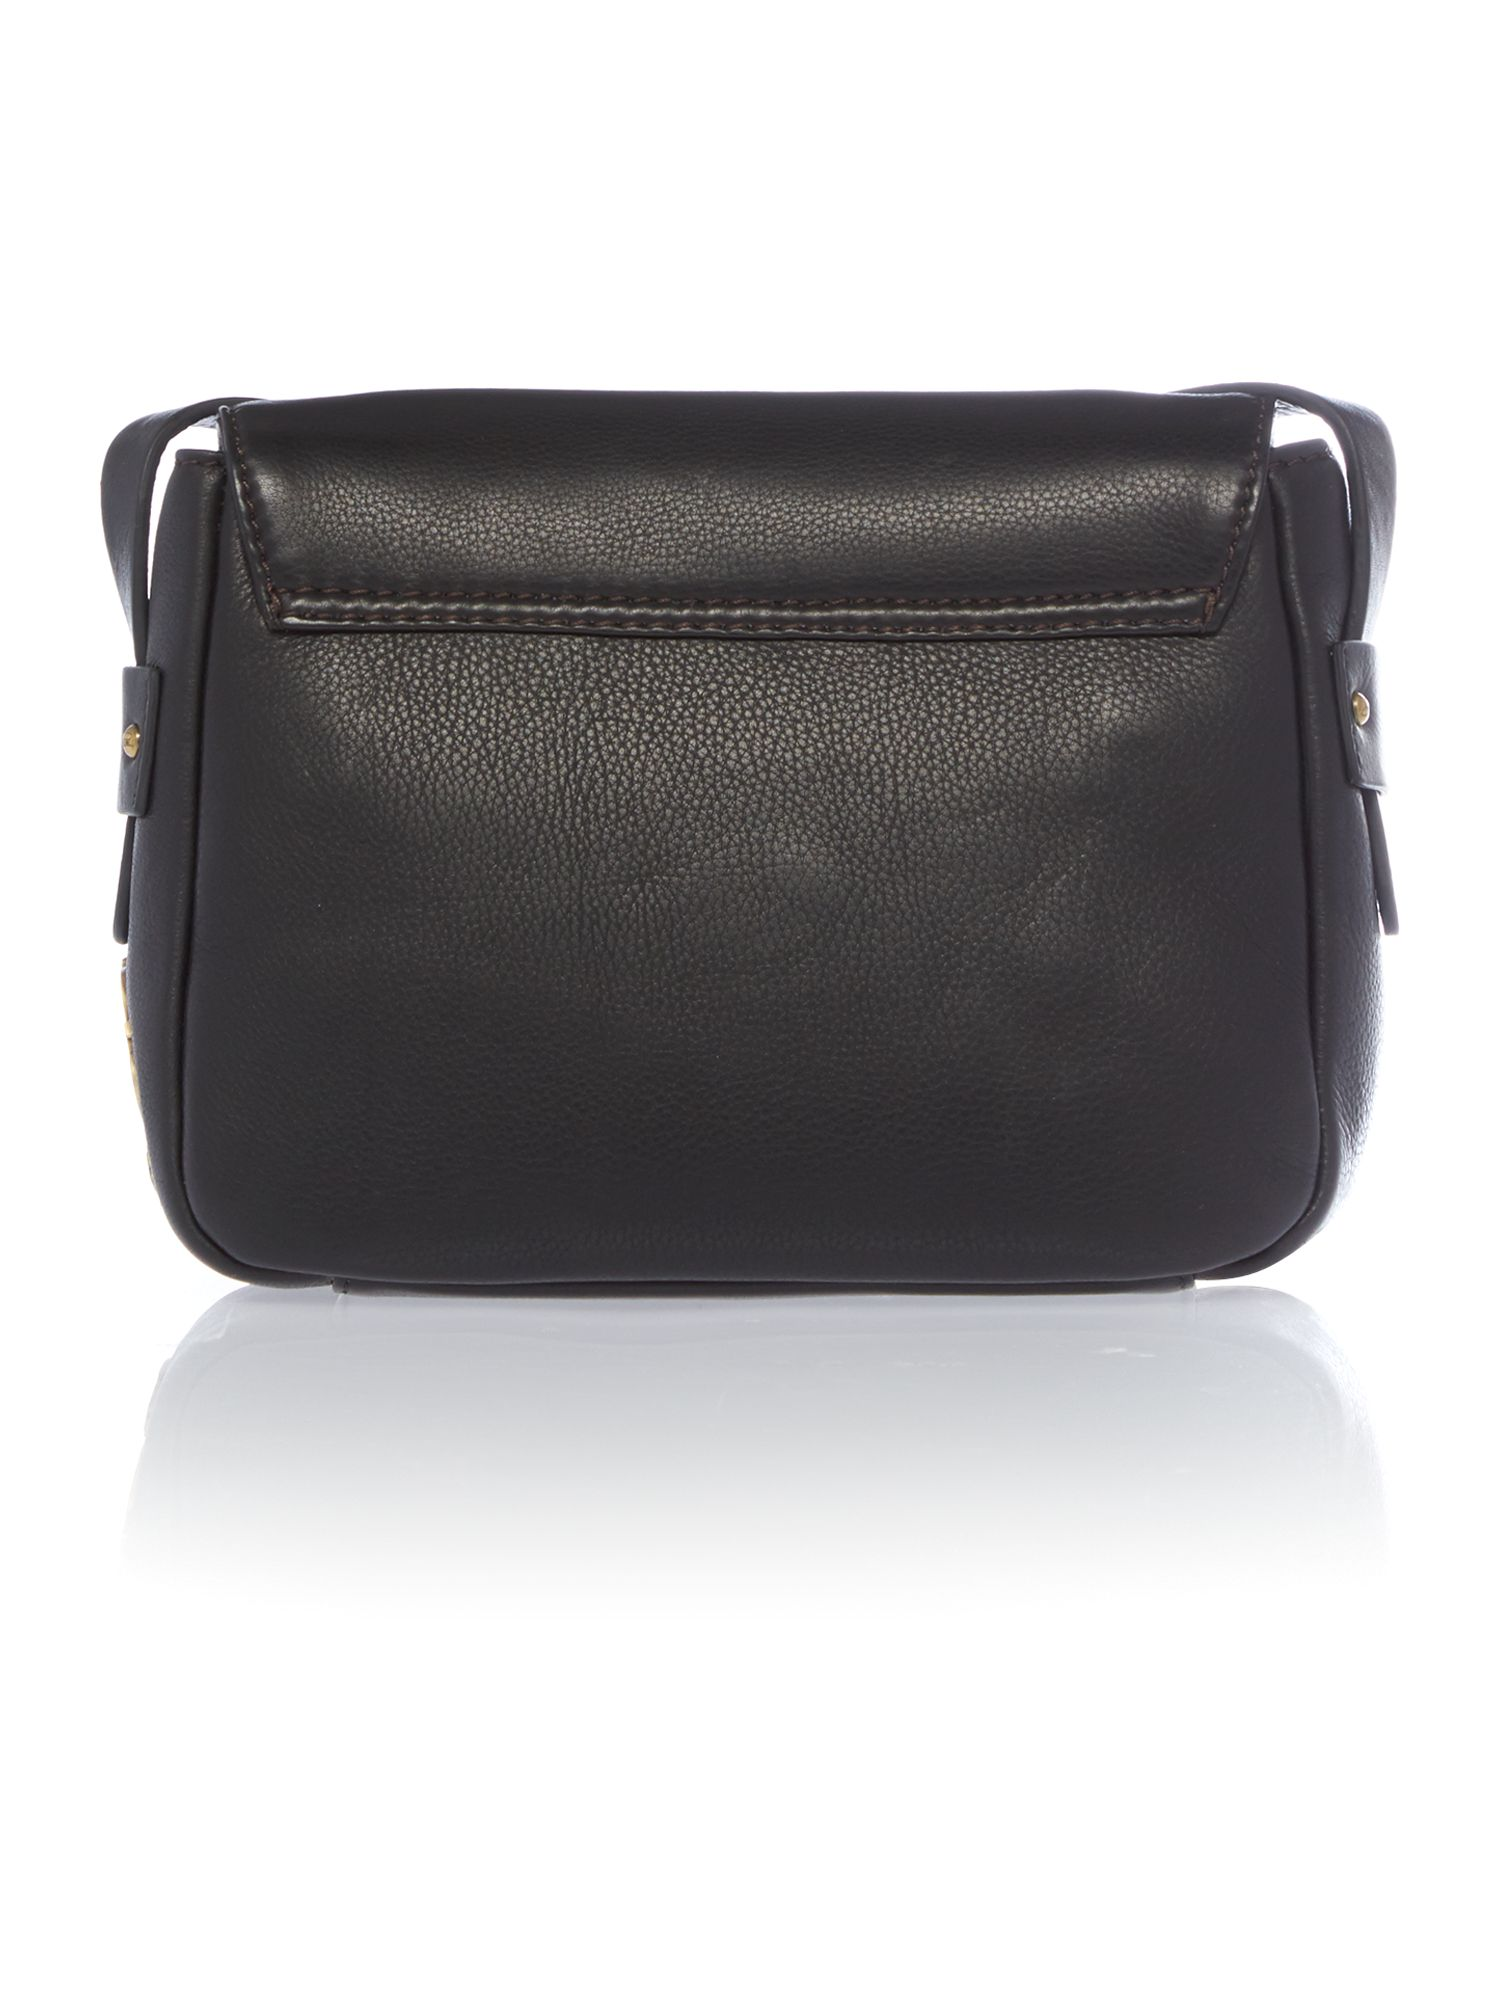 Cranleigh black cross body bag